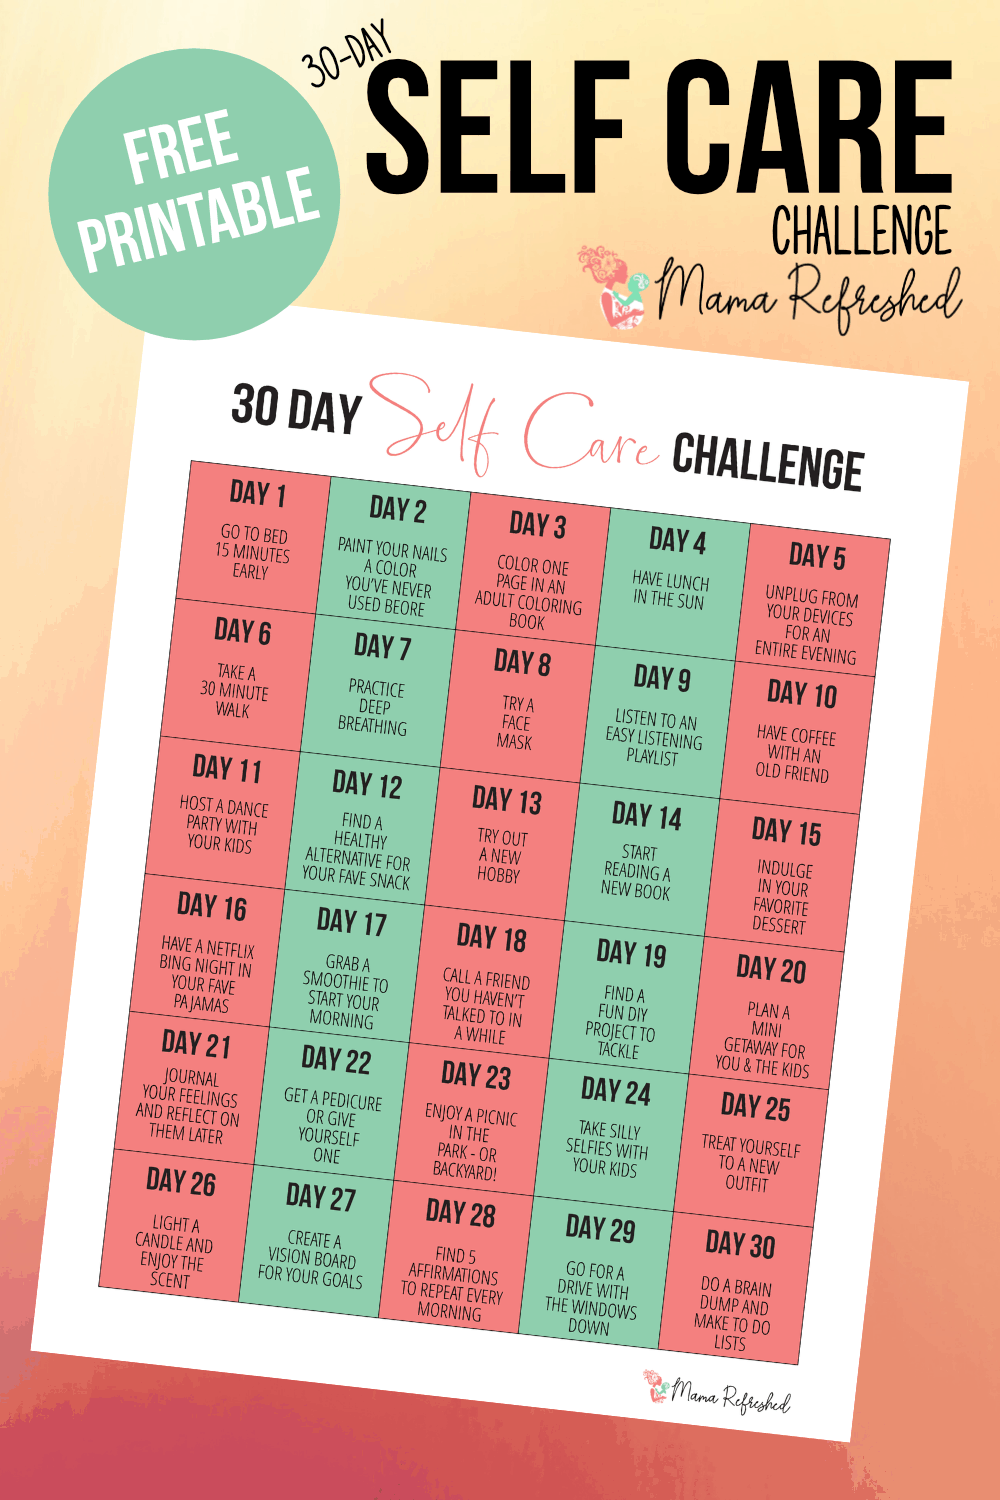 30 Day Self Care Challenge for Moms (Free Printable)